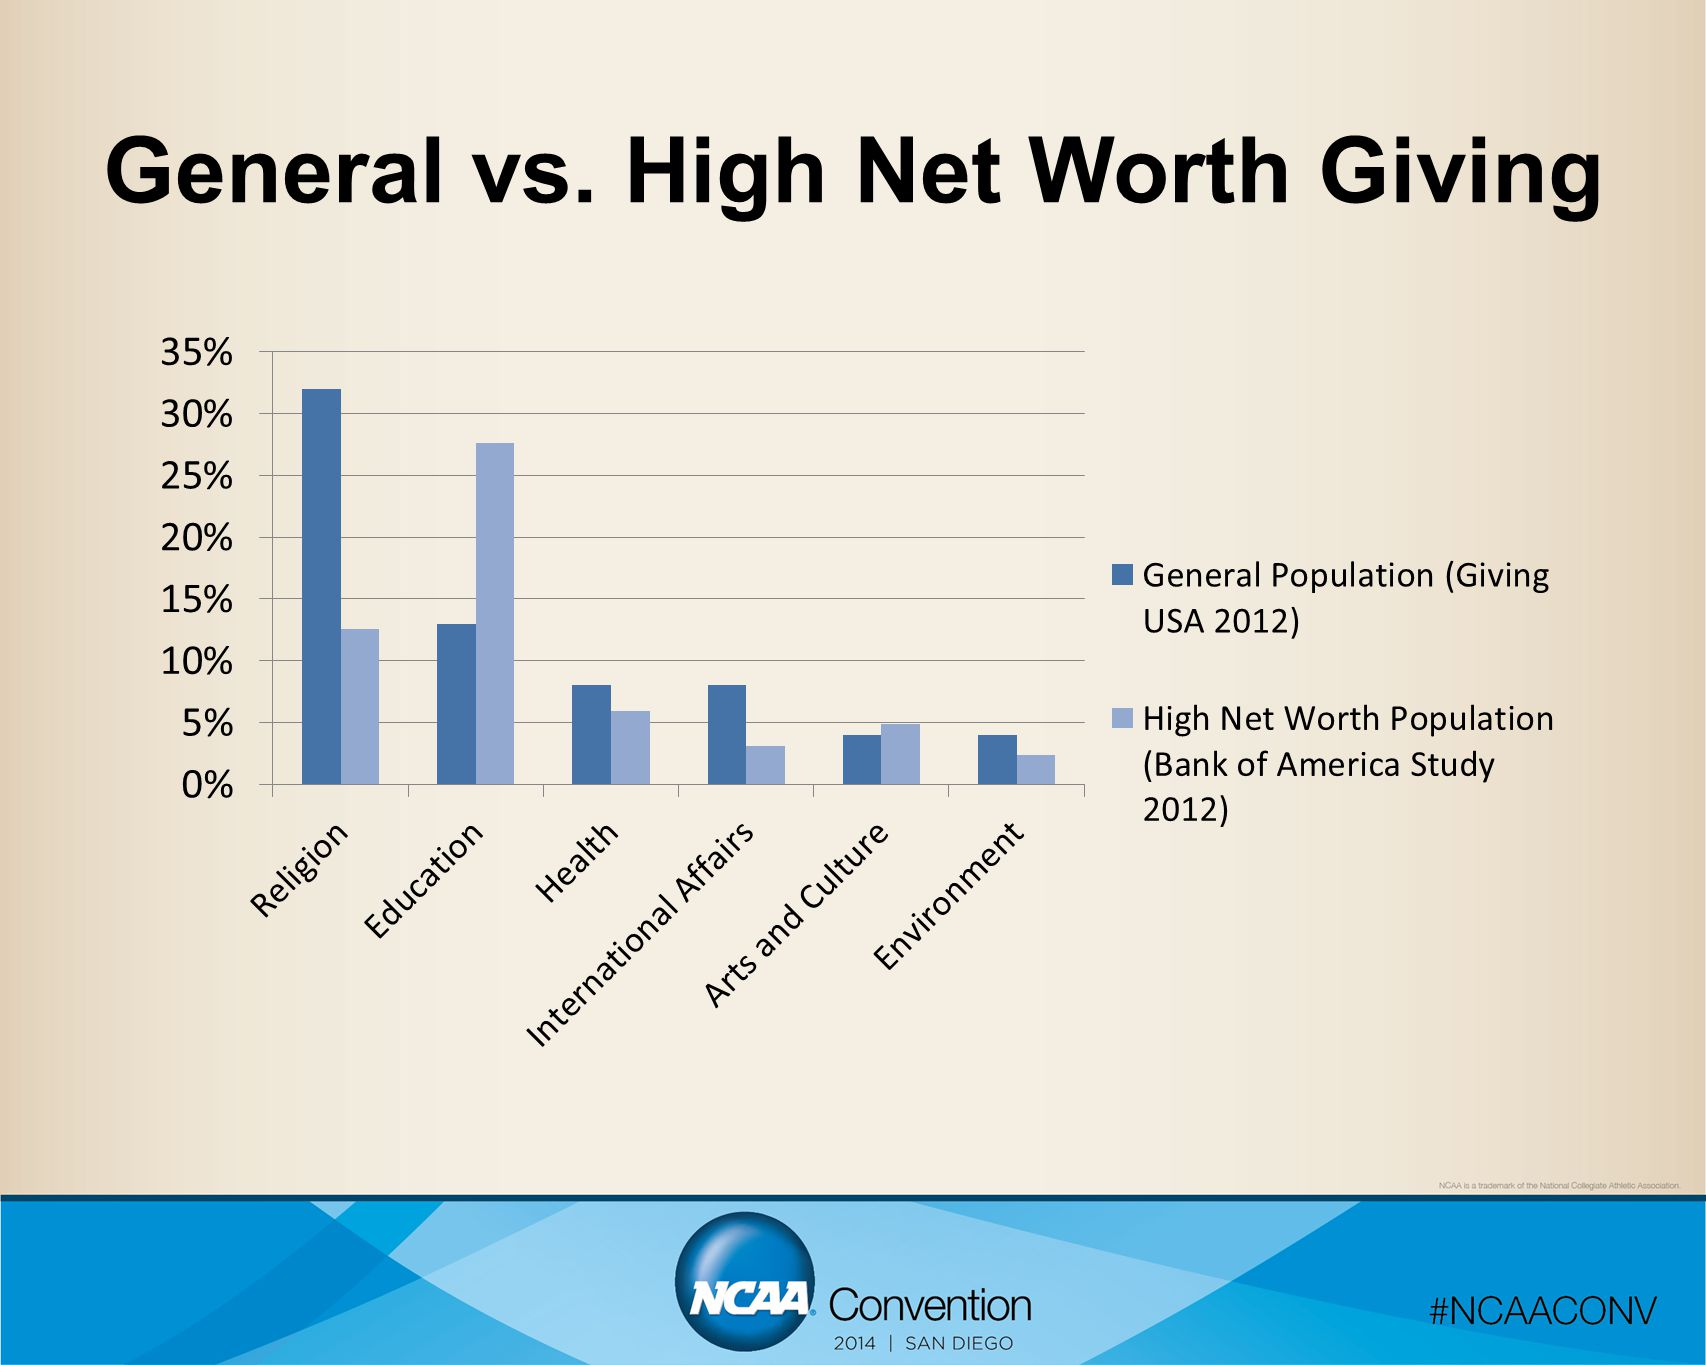 General vs. High Net Worth Giving